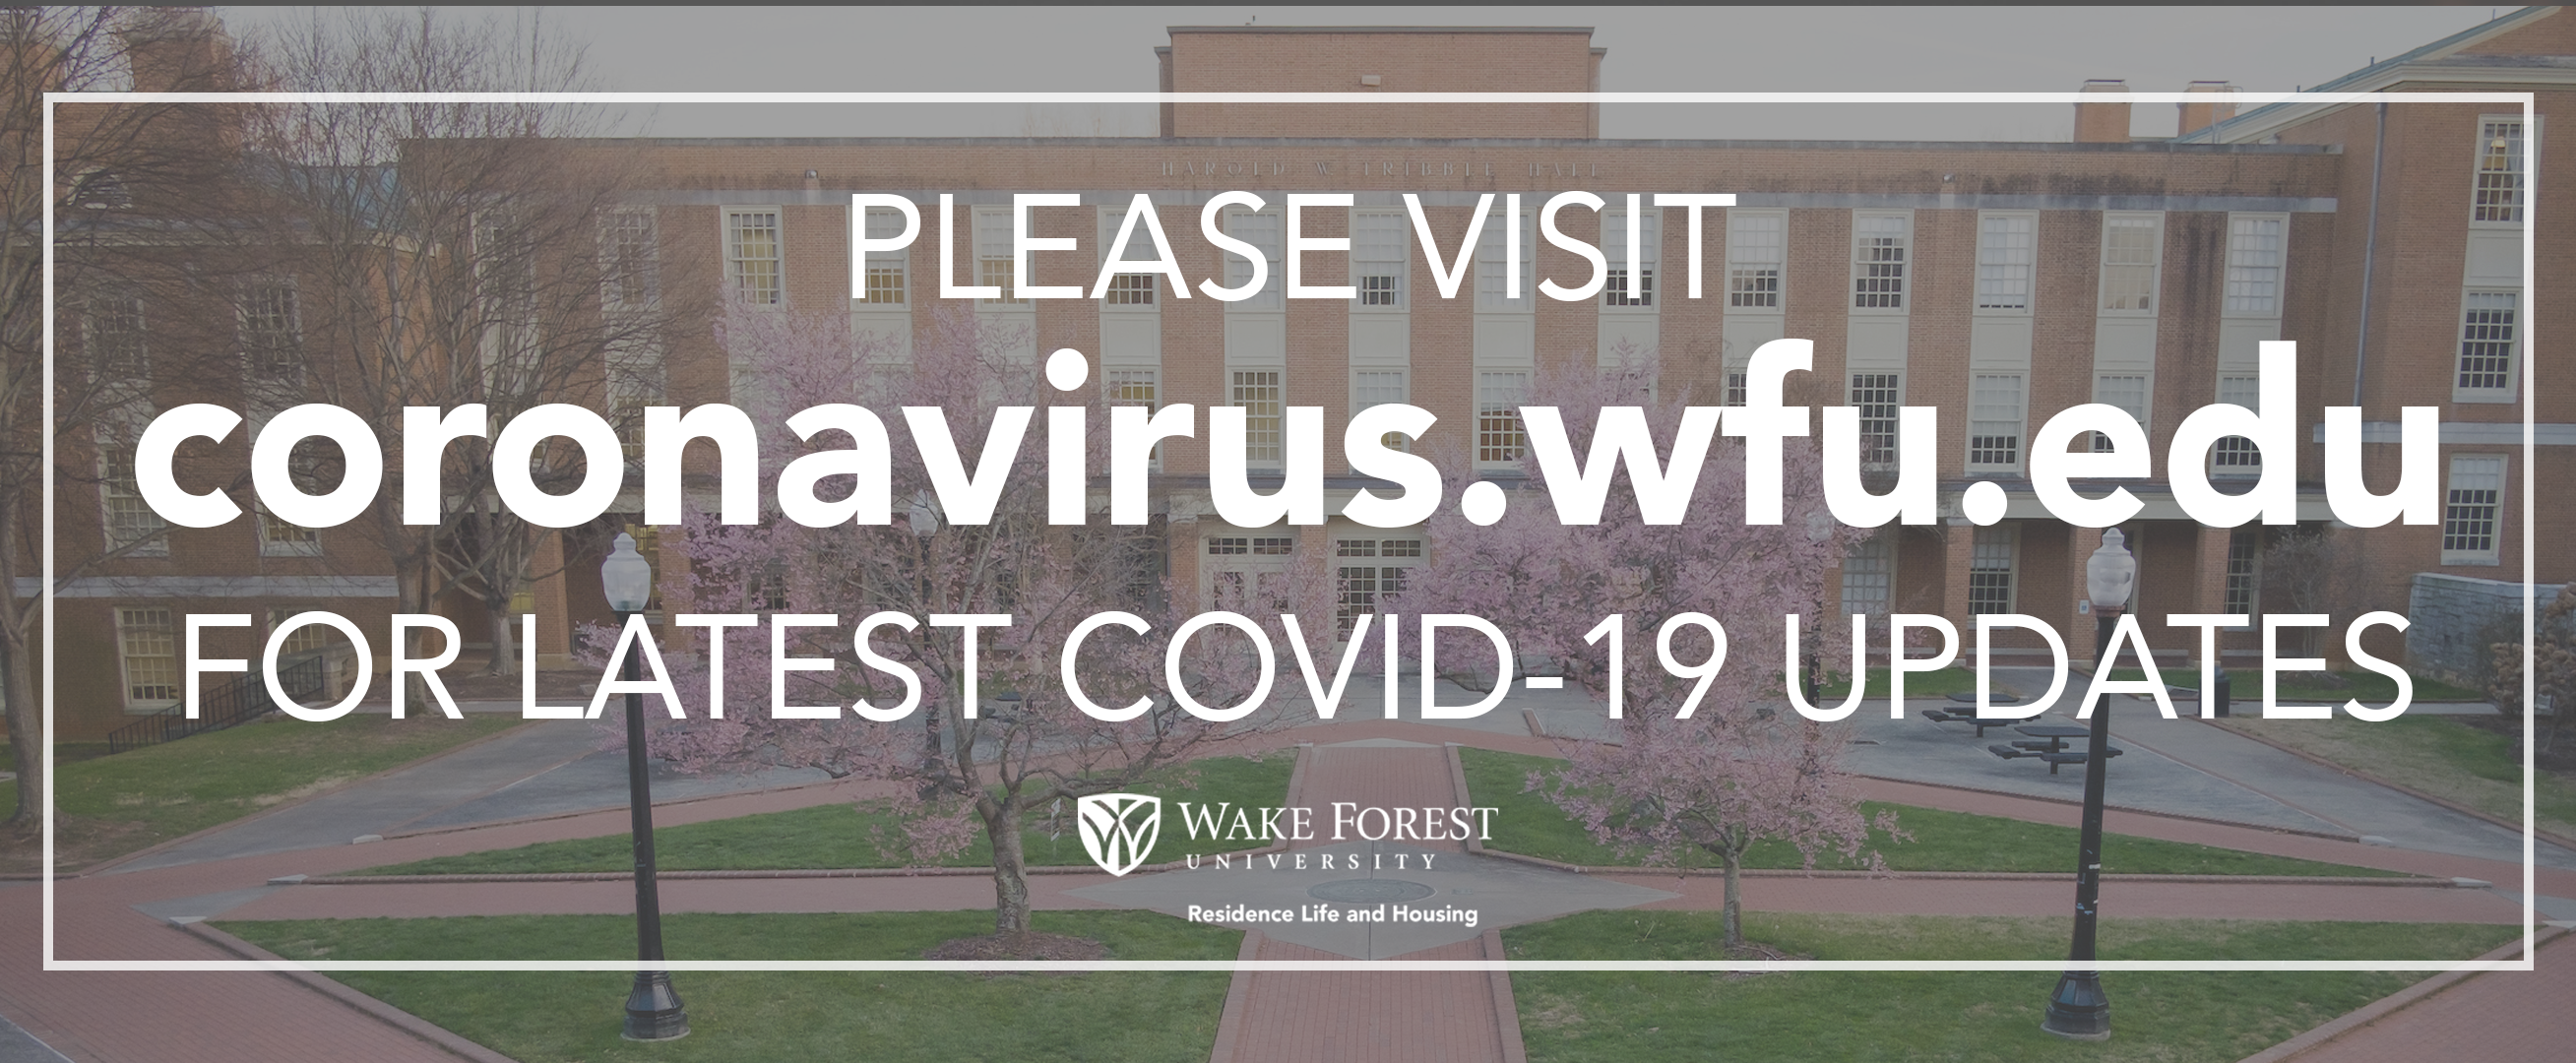 Visit coronavirus.wfu.edu for more information on COVID-19